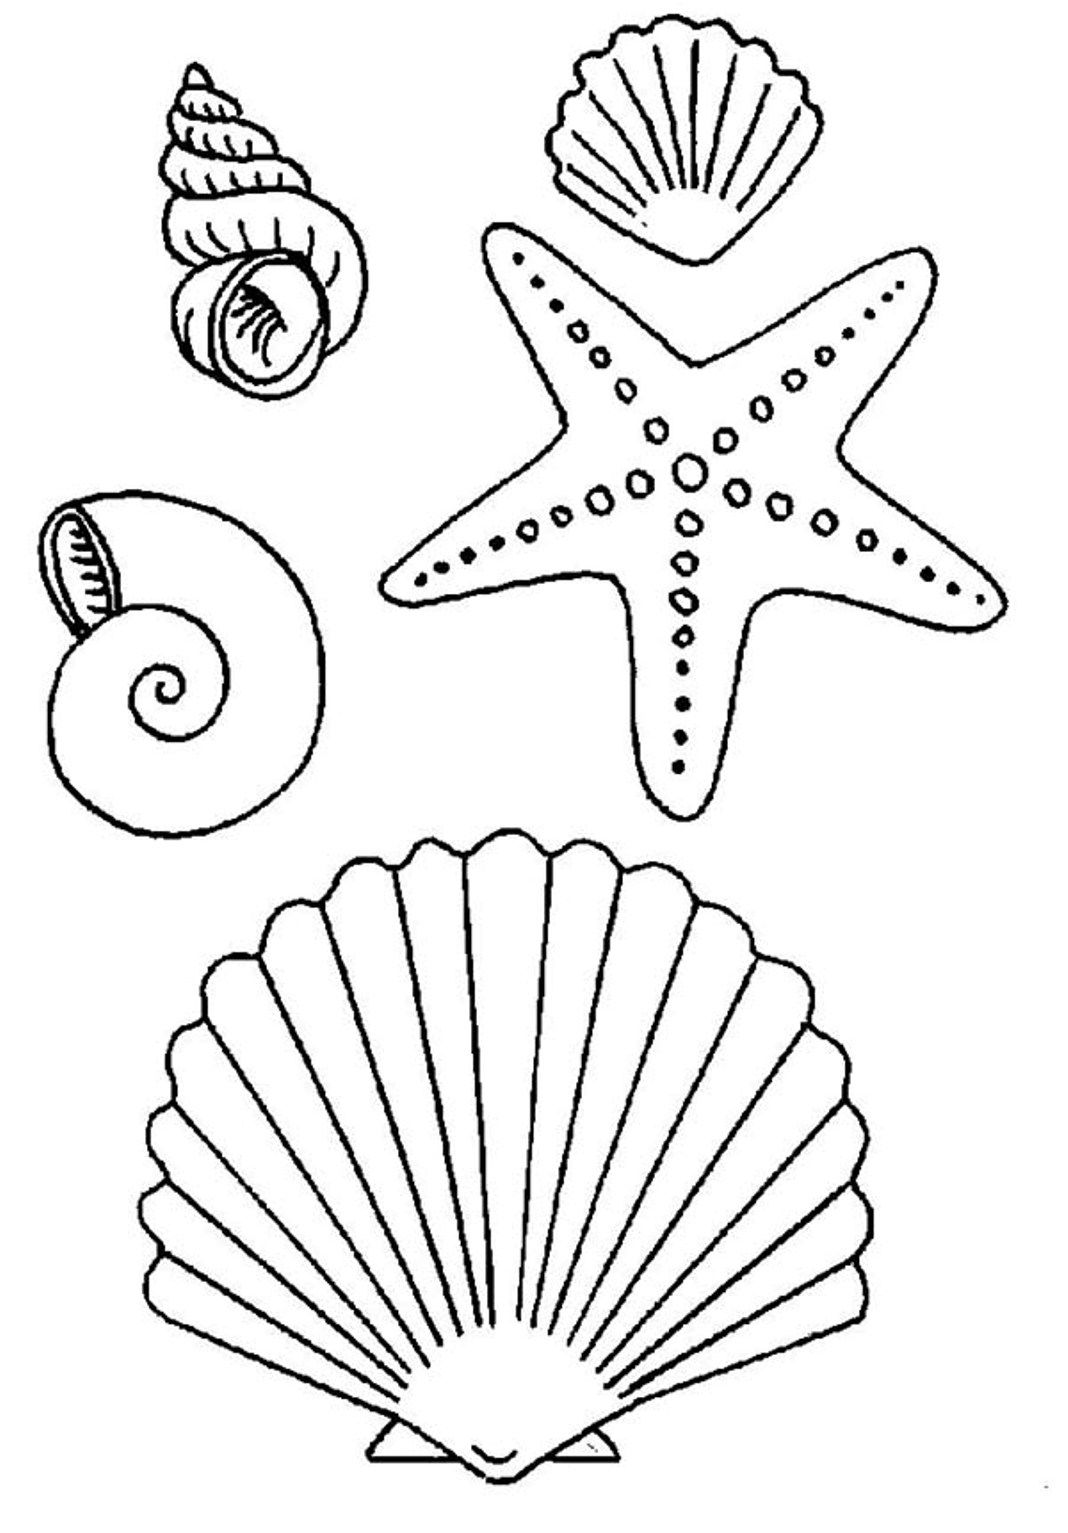 download and print seashell and starfish coloring pages - Starfish Coloring Pages